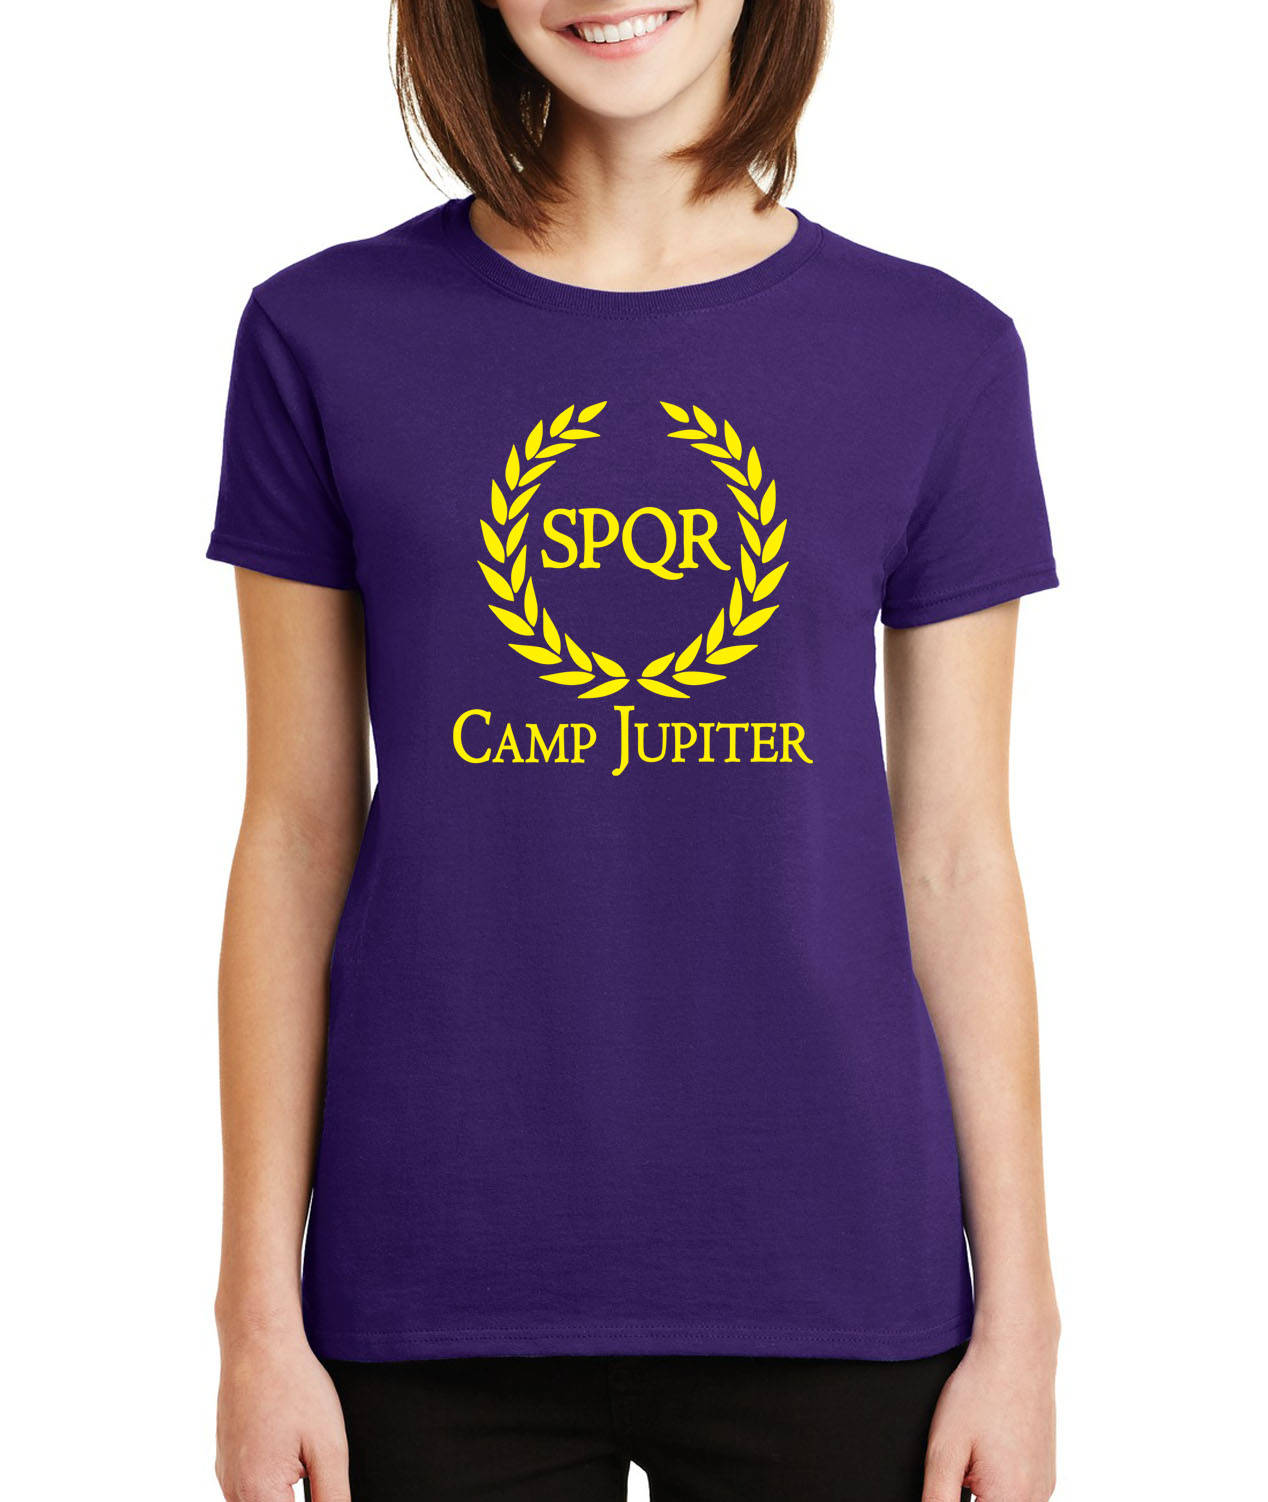 Camp Half-Blood Branches Camp Jupiter T-Shirt Percy ... Camp Jupiter Shirt Percy Jackson